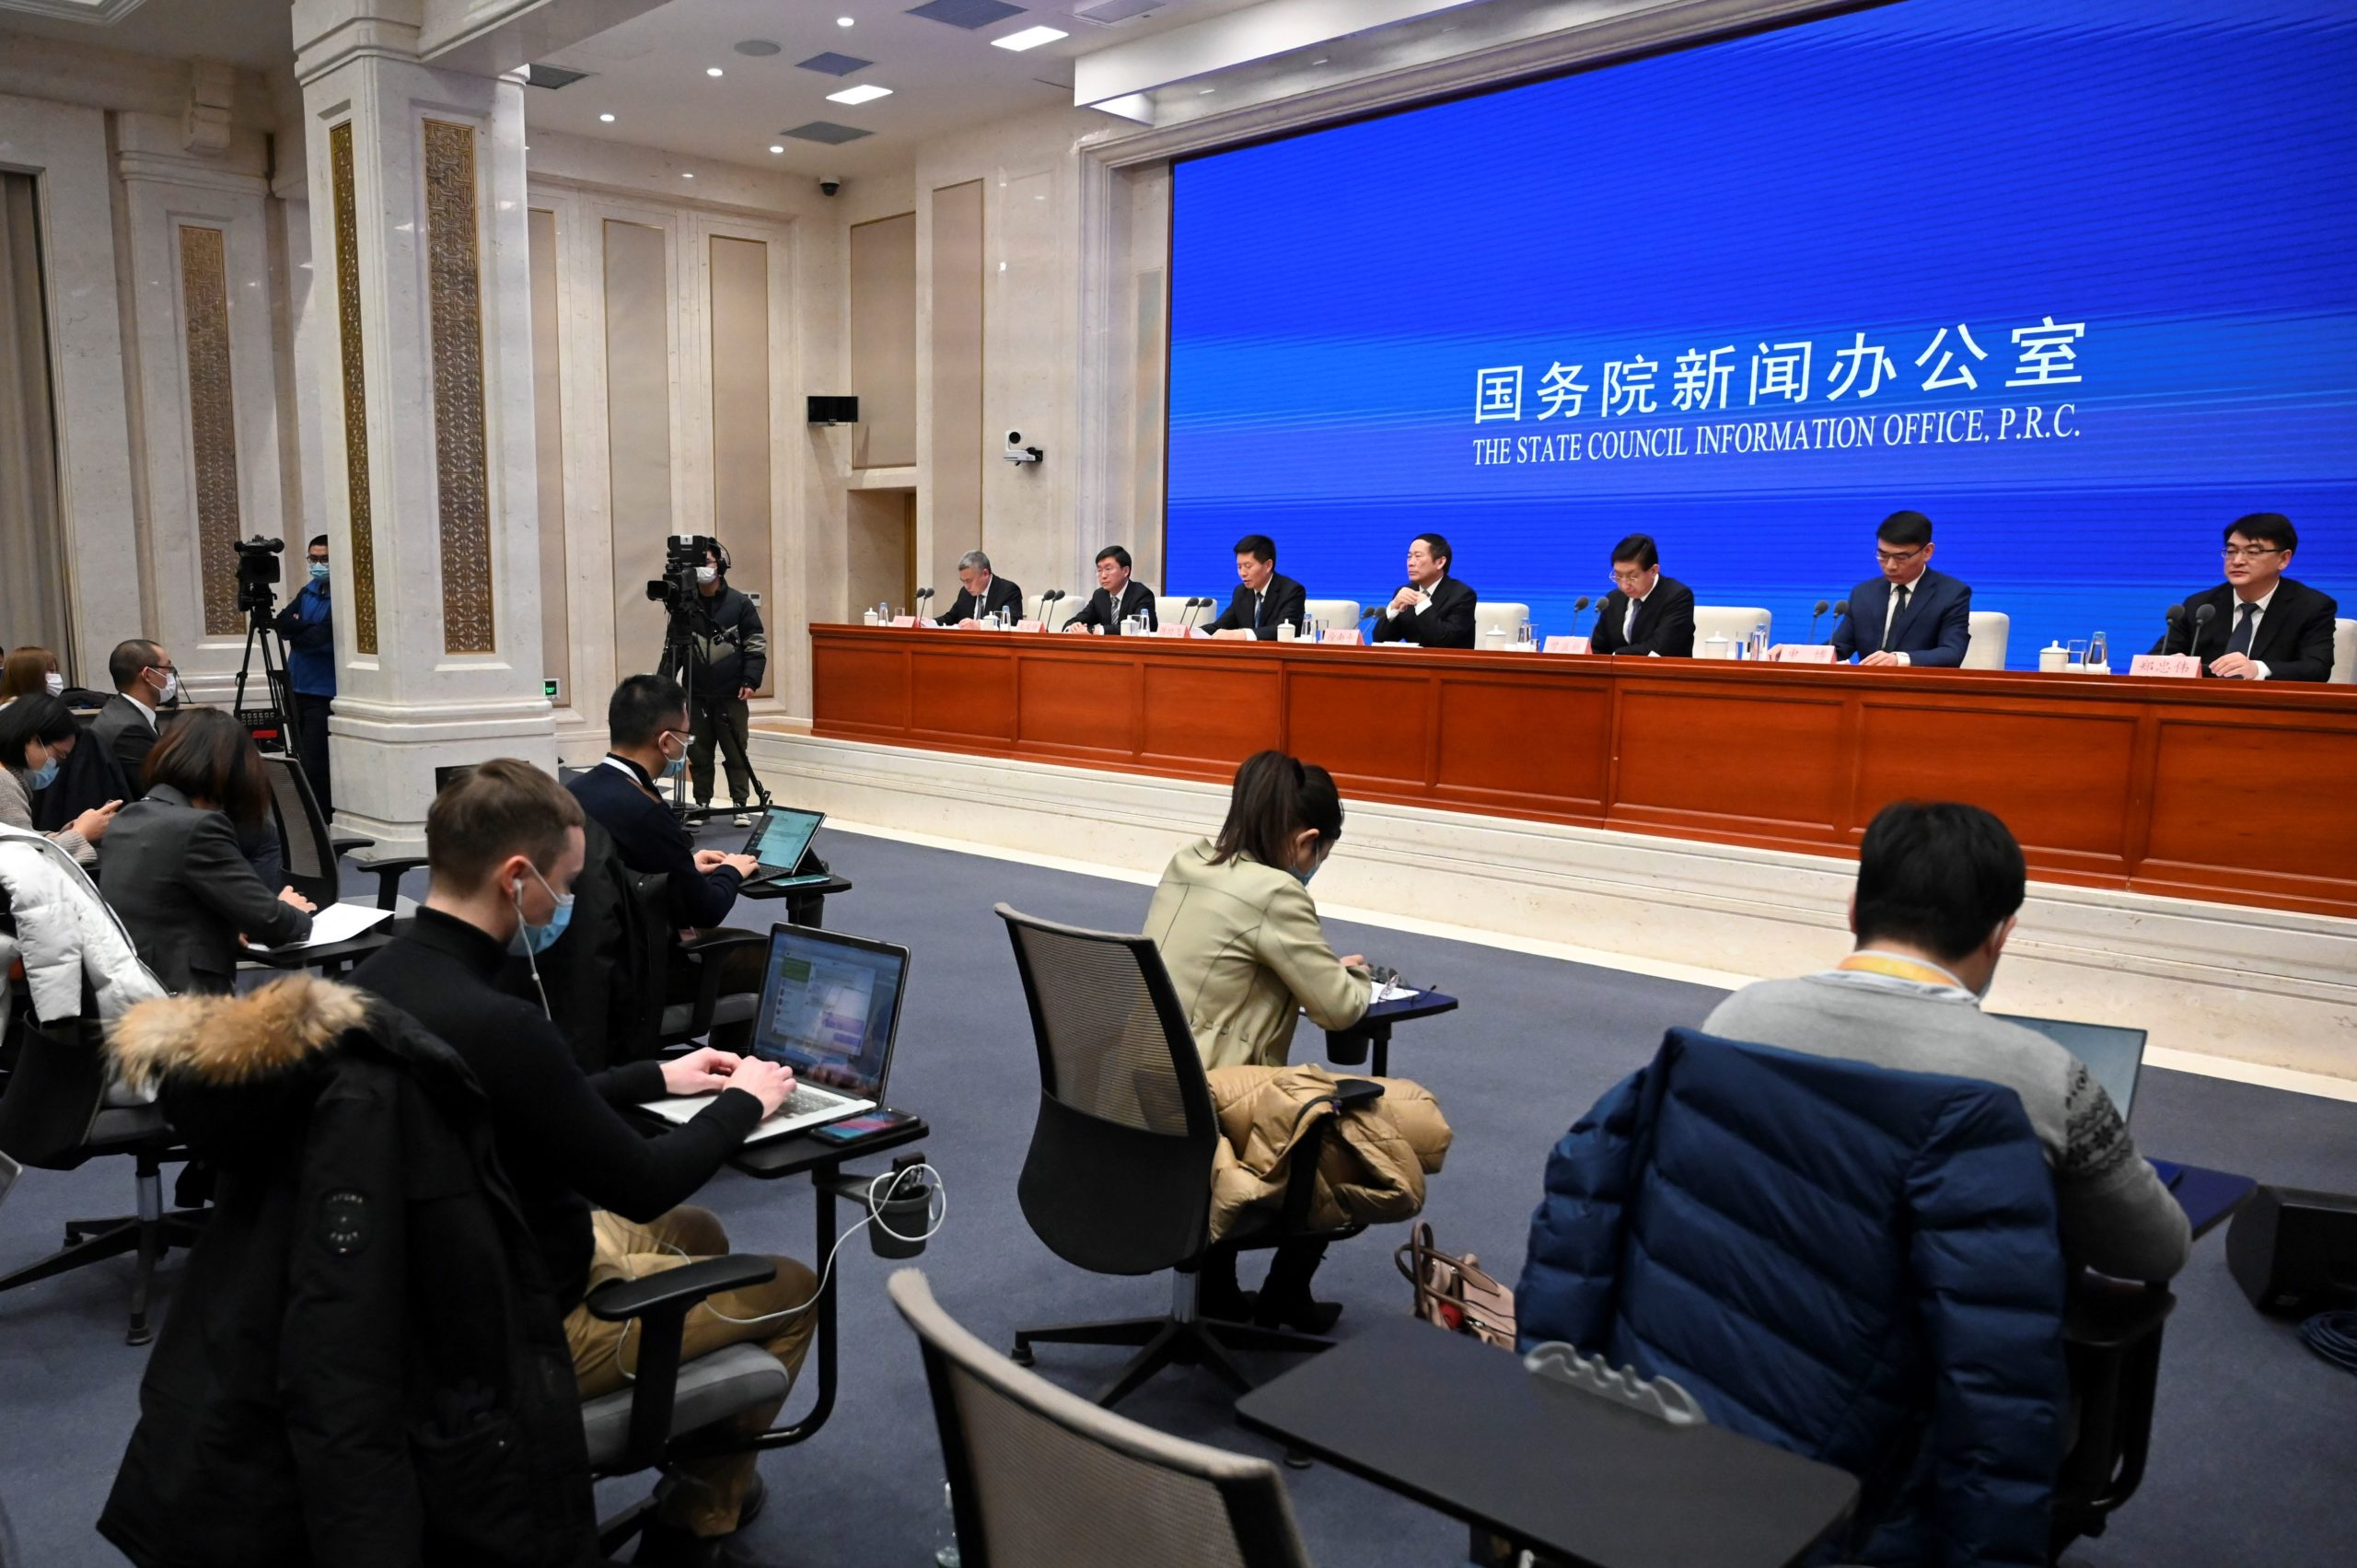 A general view shows a press conference on COVID-19 coronavirus vaccinations held by the State Council Information Office in Beijing on December 31, 2020. (Photo by Leo RAMIREZ / AFP) (Photo by LEO RAMIREZ/AFP via Getty Images)